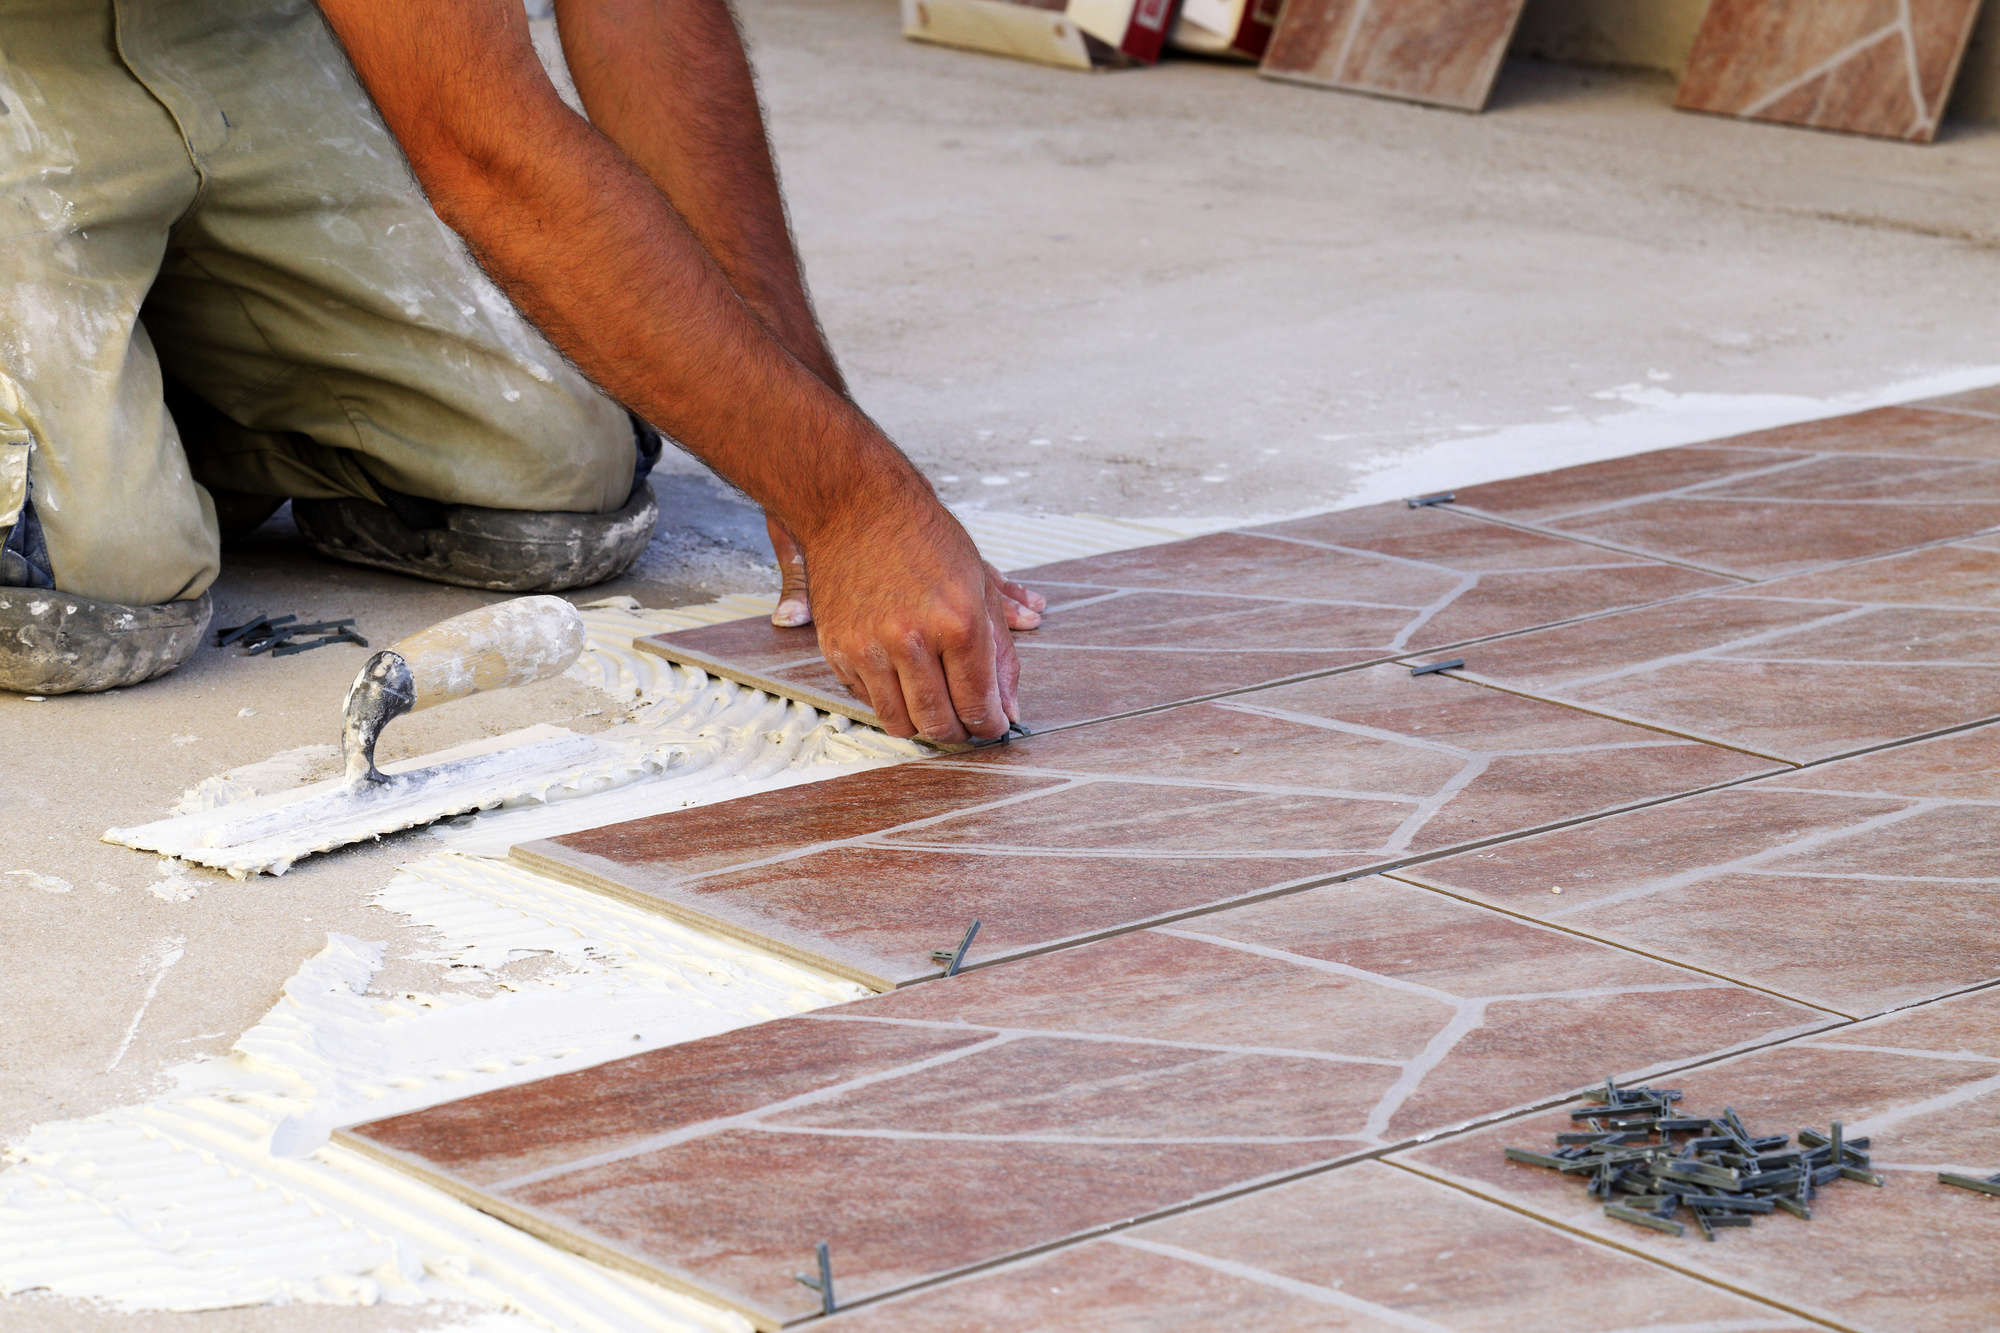 4 Most Common Mistakes When Laying Floor Tiles (And How to Avoid